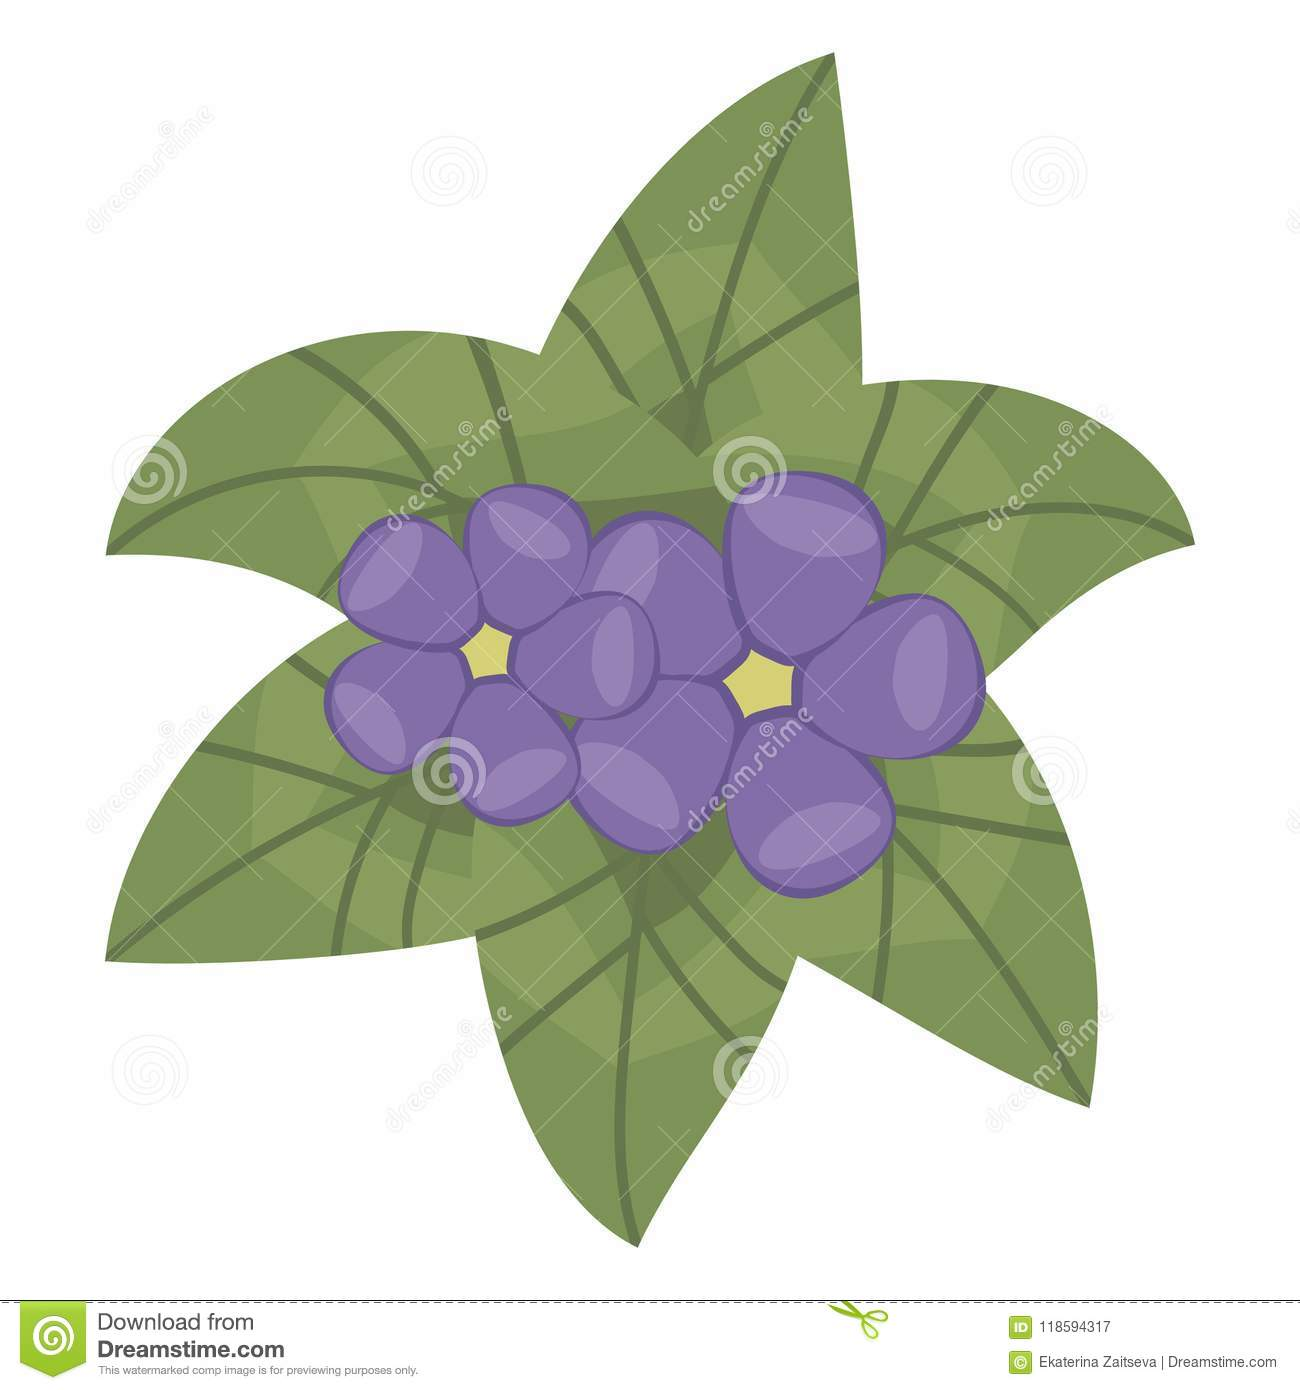 Composition of green shiny bright leaves and small purple flowers composition of green shiny bright leaves and small purple flowers violets with yellow center object isolated mightylinksfo